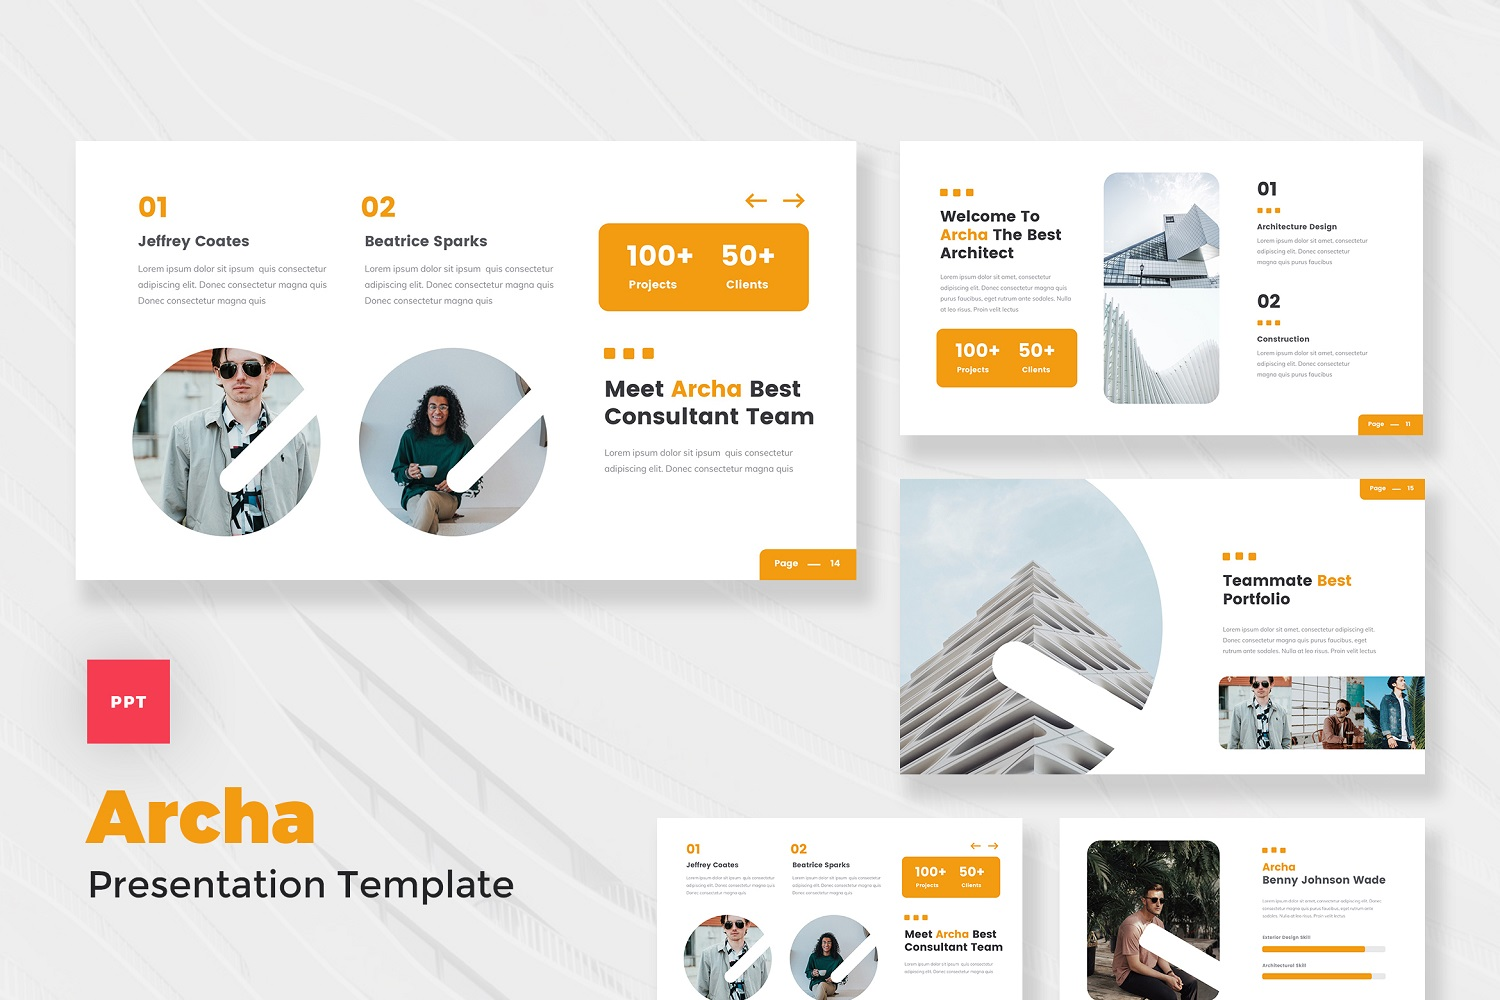 Archa - Architecture Agency PowerPoint Template